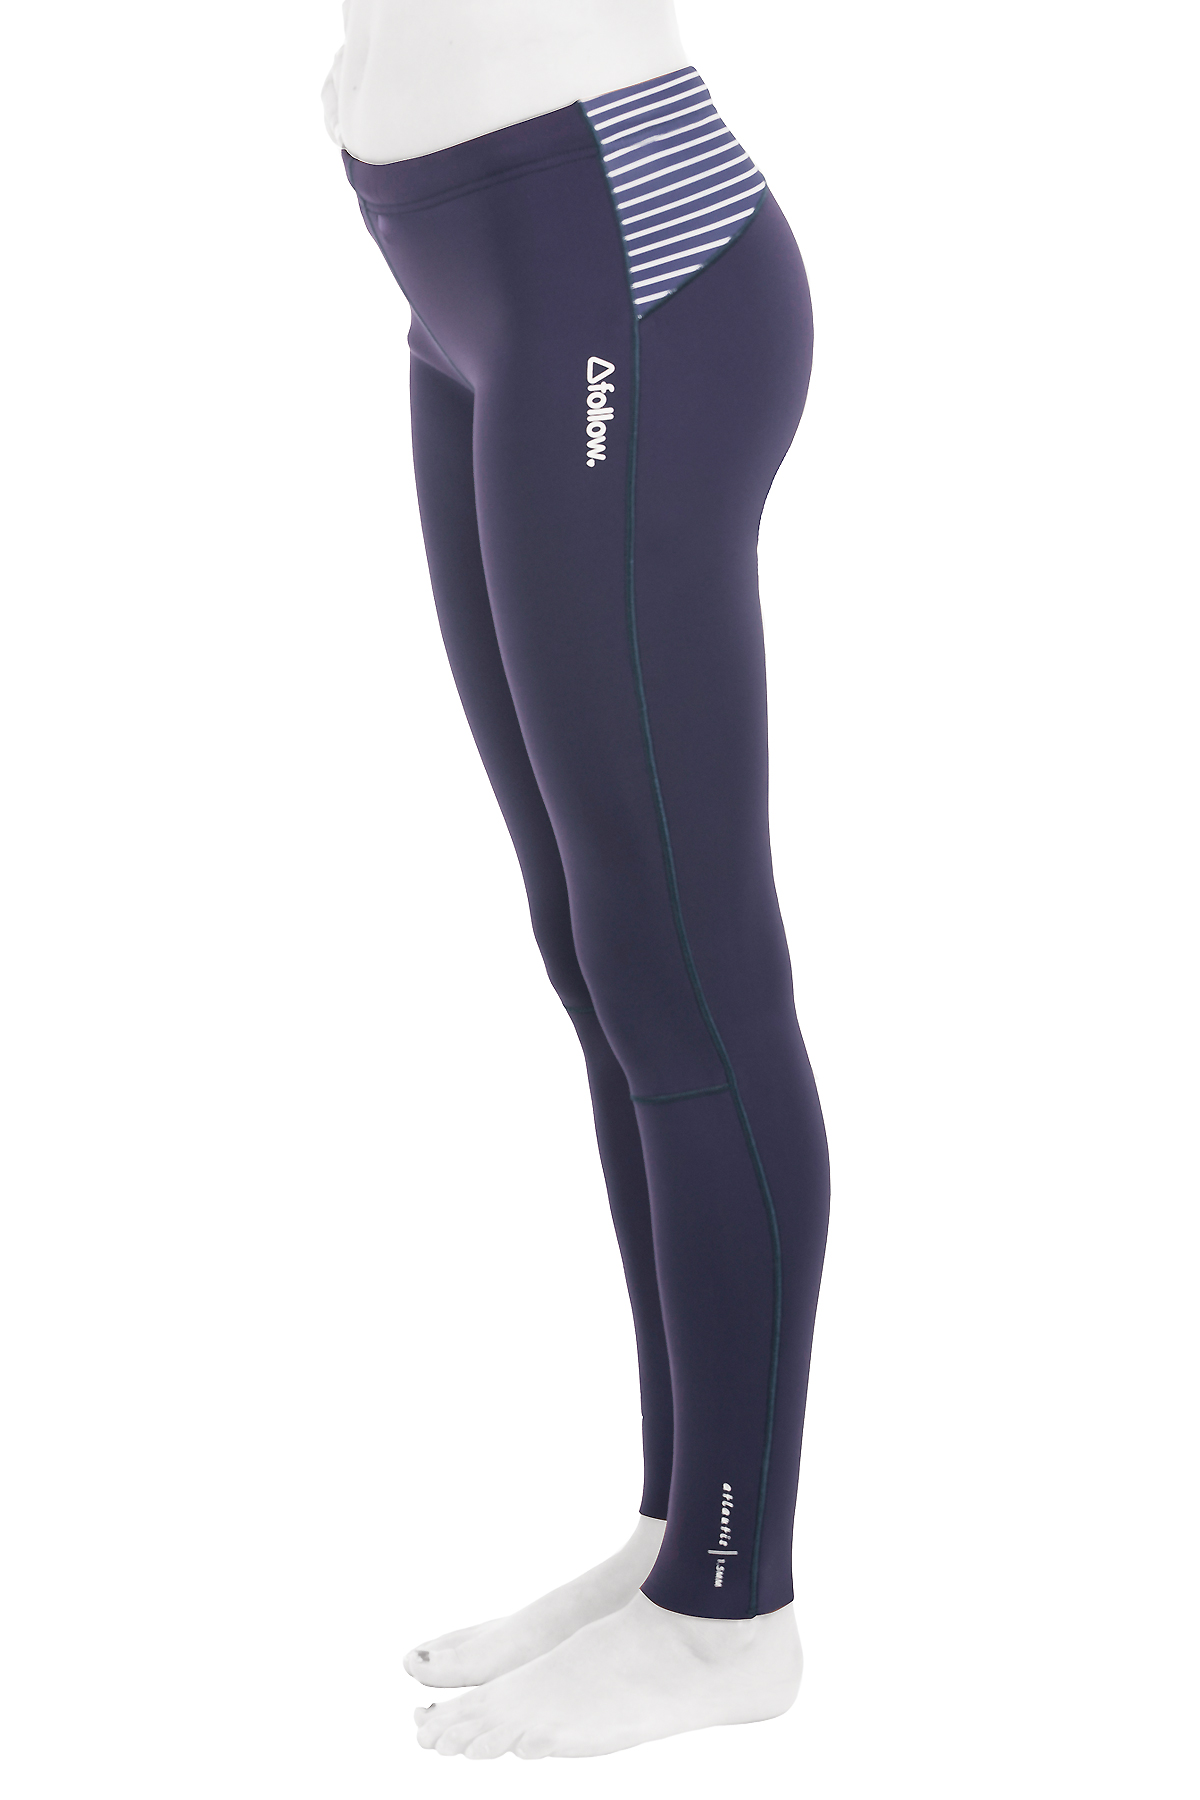 ATLANTIS NEO LEGGINGS - NAVY FOLLOW 2019